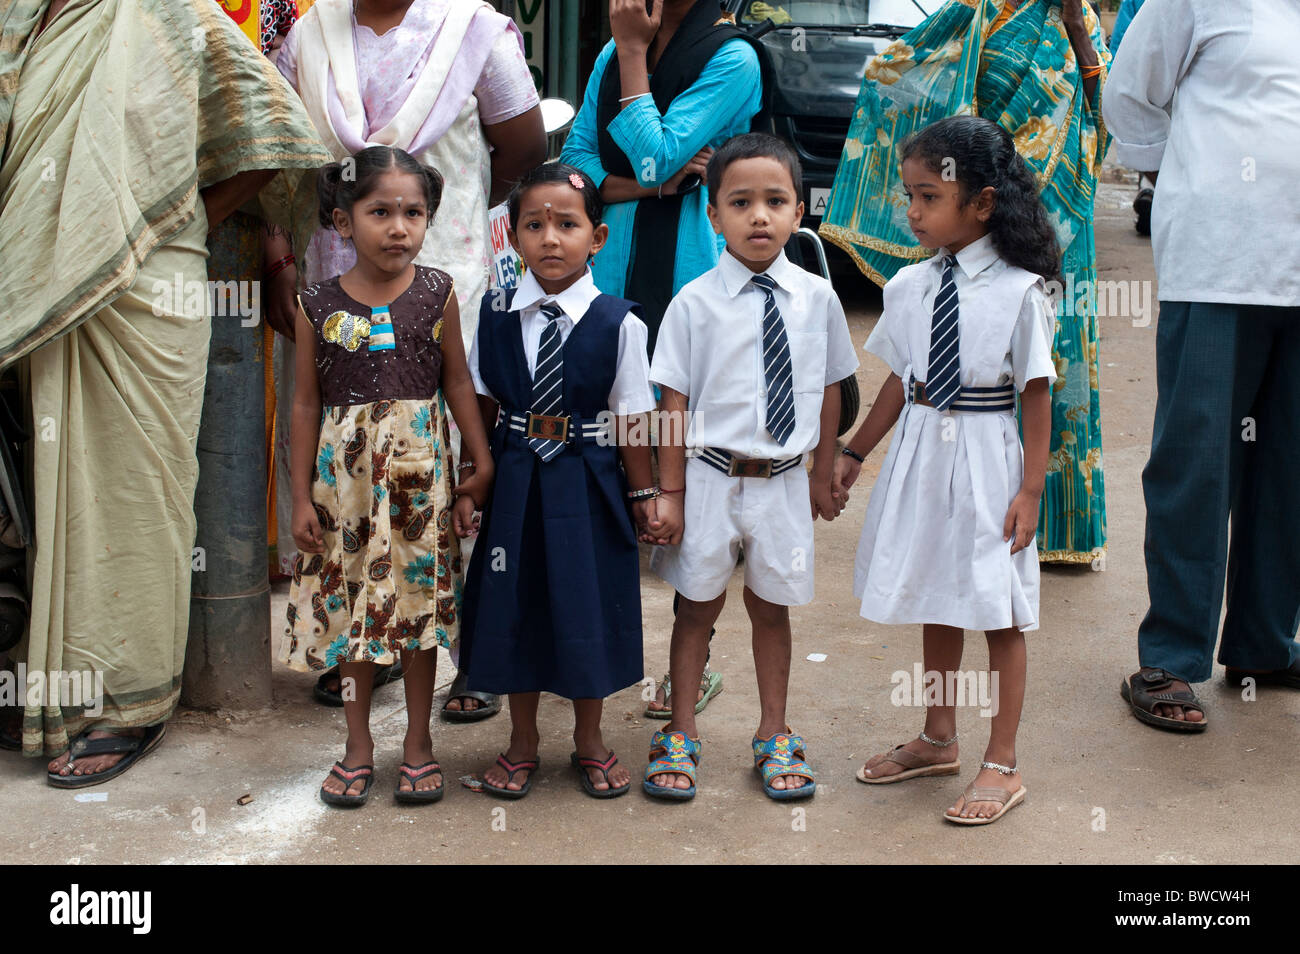 Indian school children in a crowd on the street of Puttaparthi, Andhra Pradesh, India - Stock Image